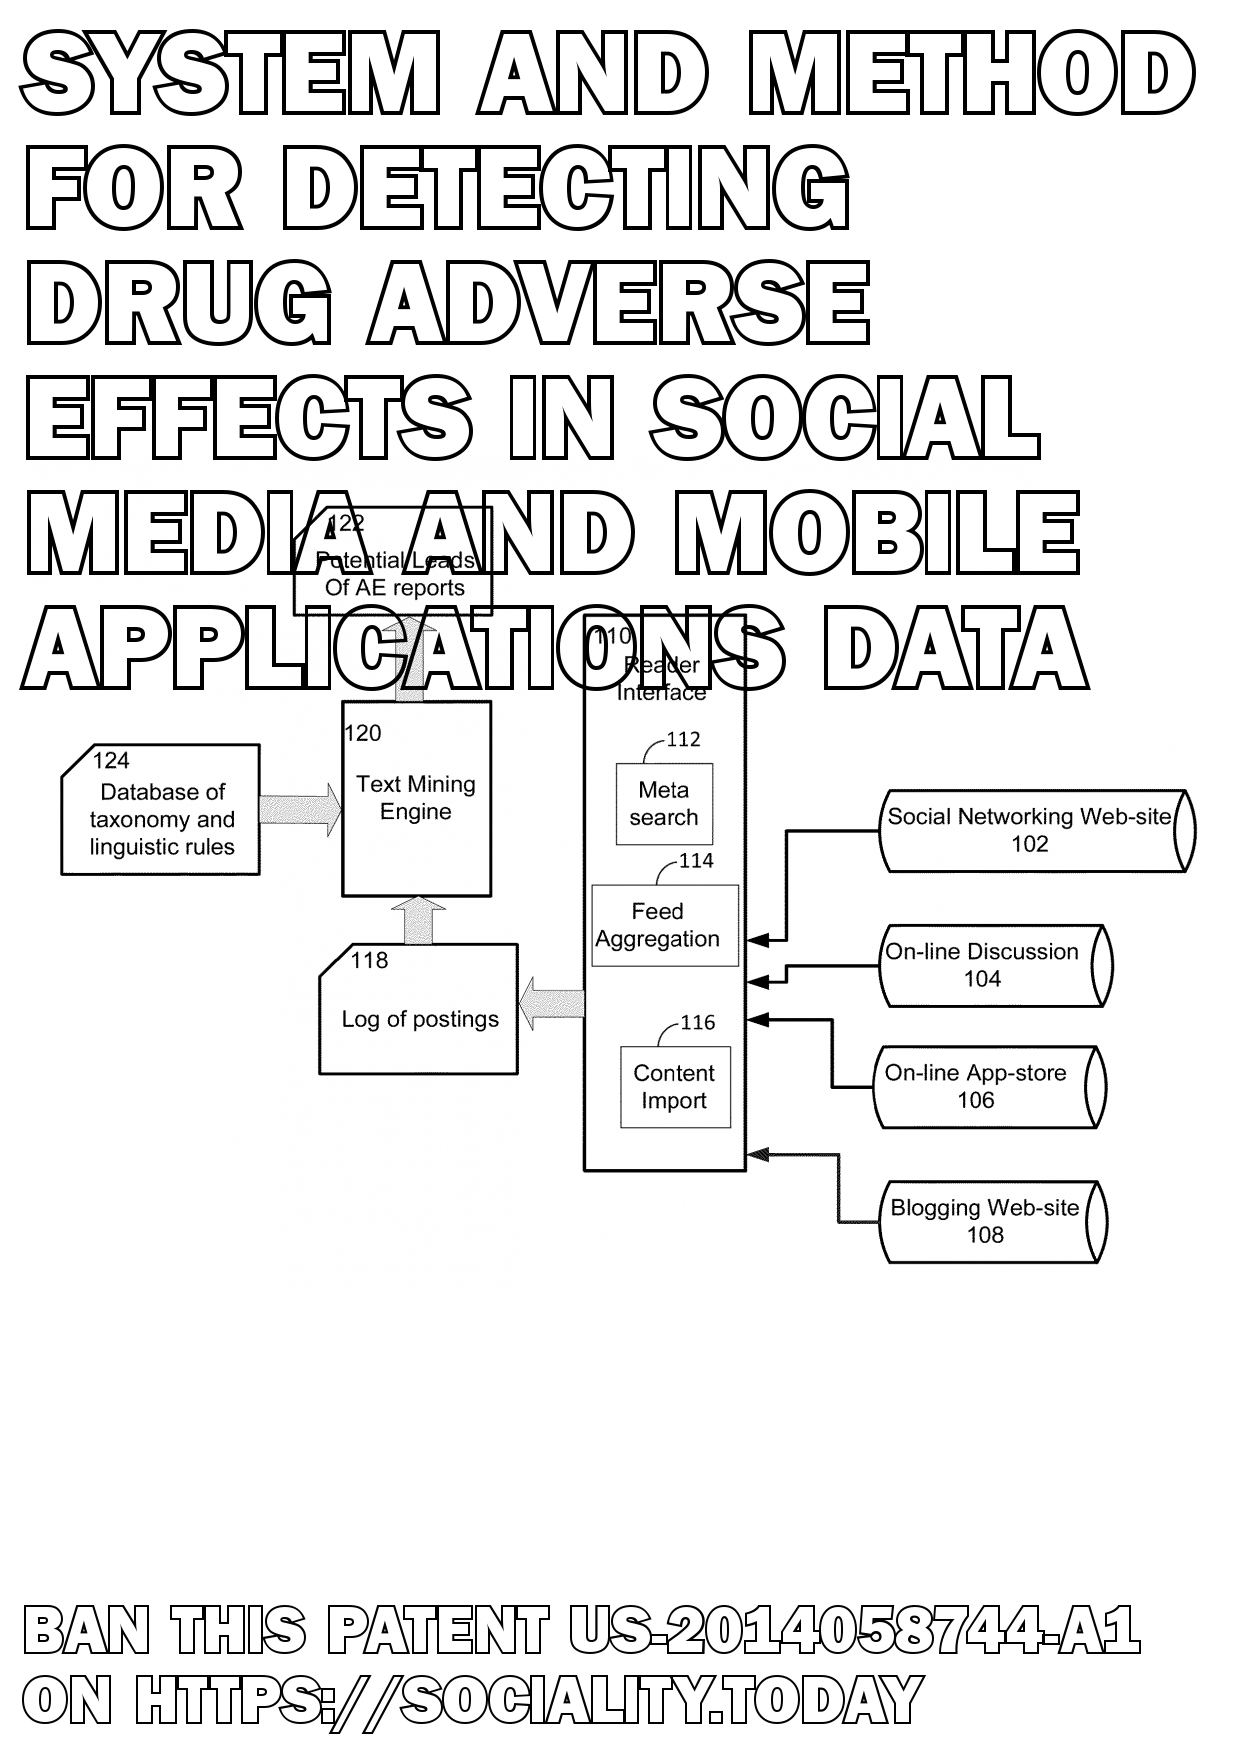 System and Method for Detecting Drug Adverse Effects in Social Media and Mobile Applications Data  - US-2014058744-A1